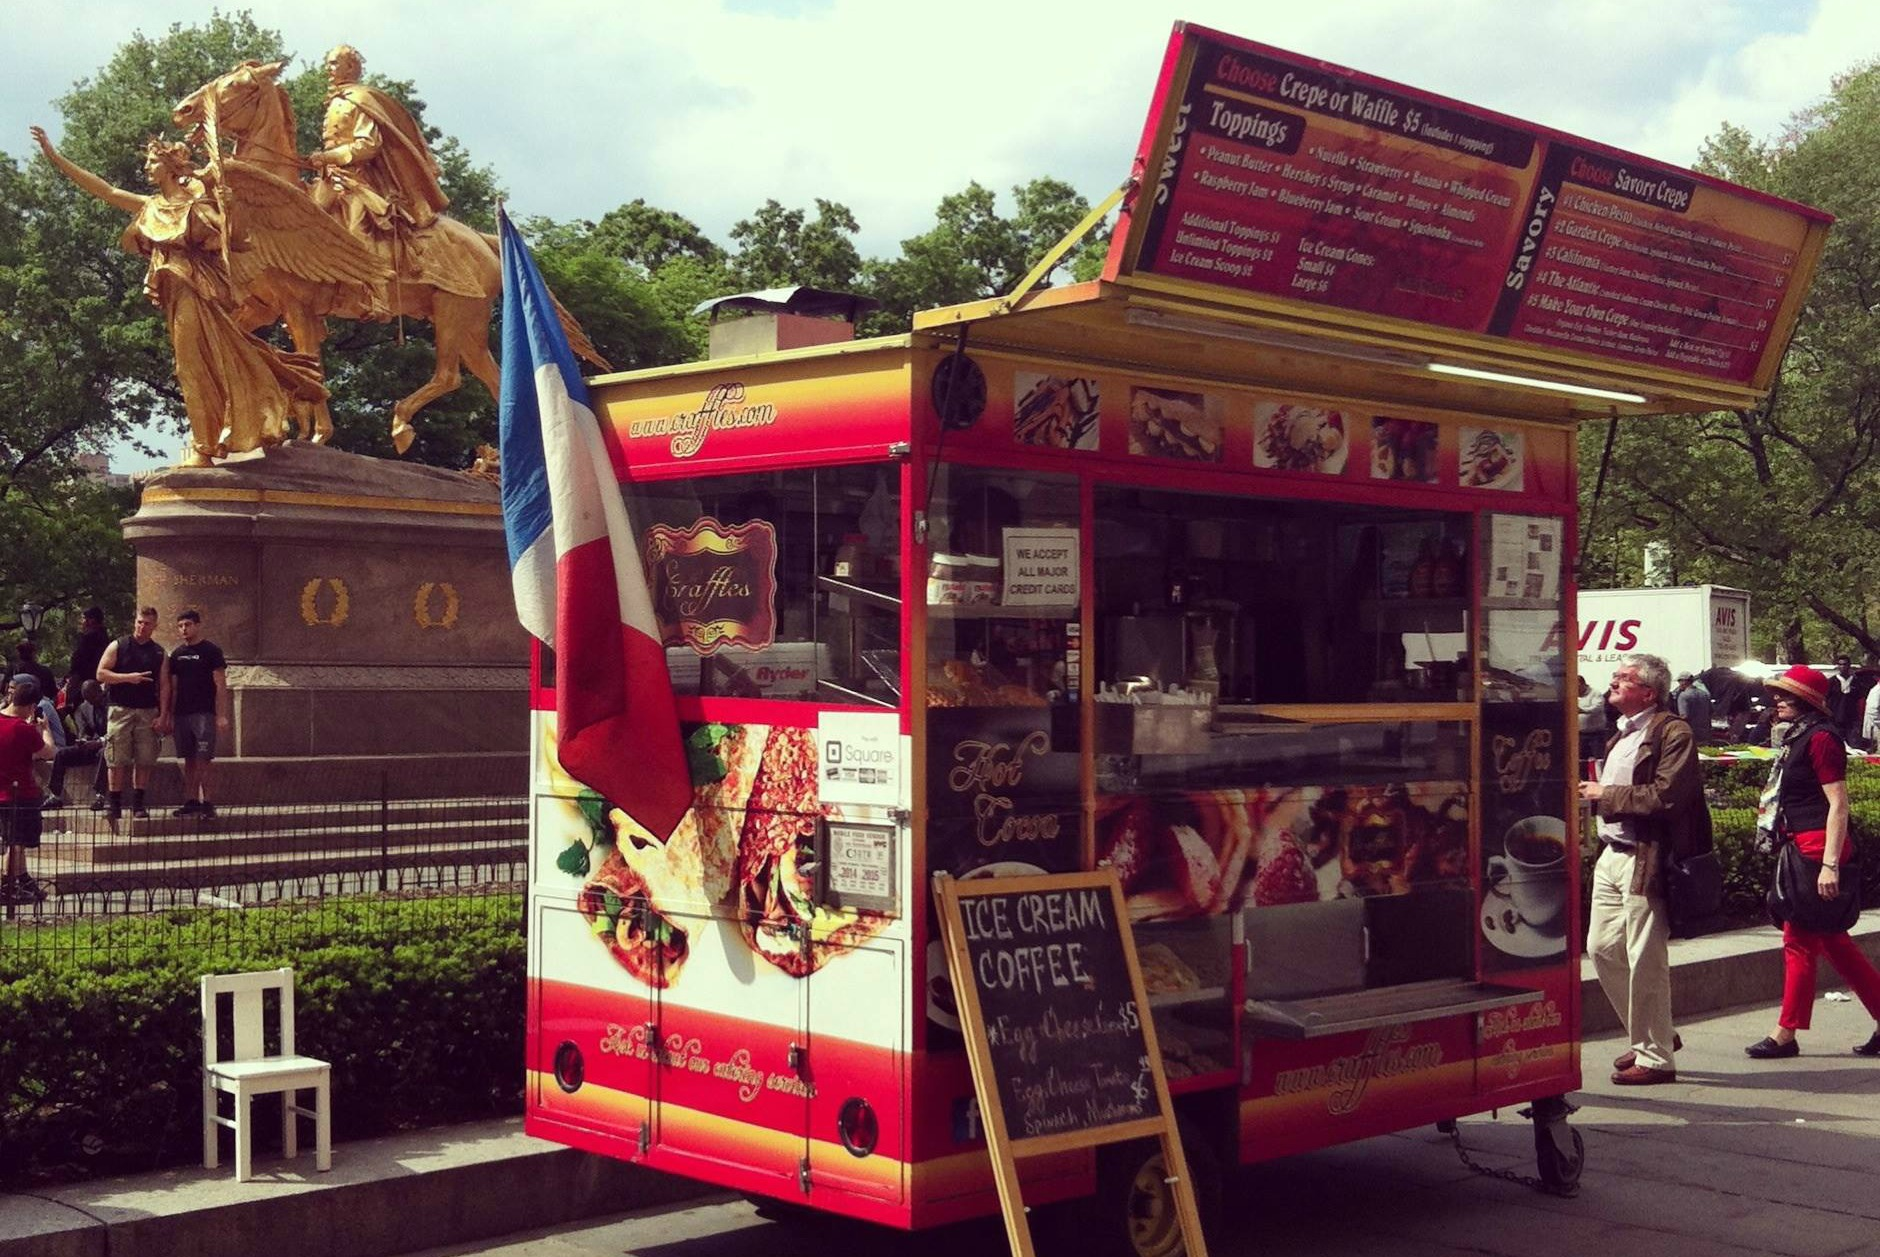 Daily Link Fix Where The Best Food Trucks Are Ikea Defies